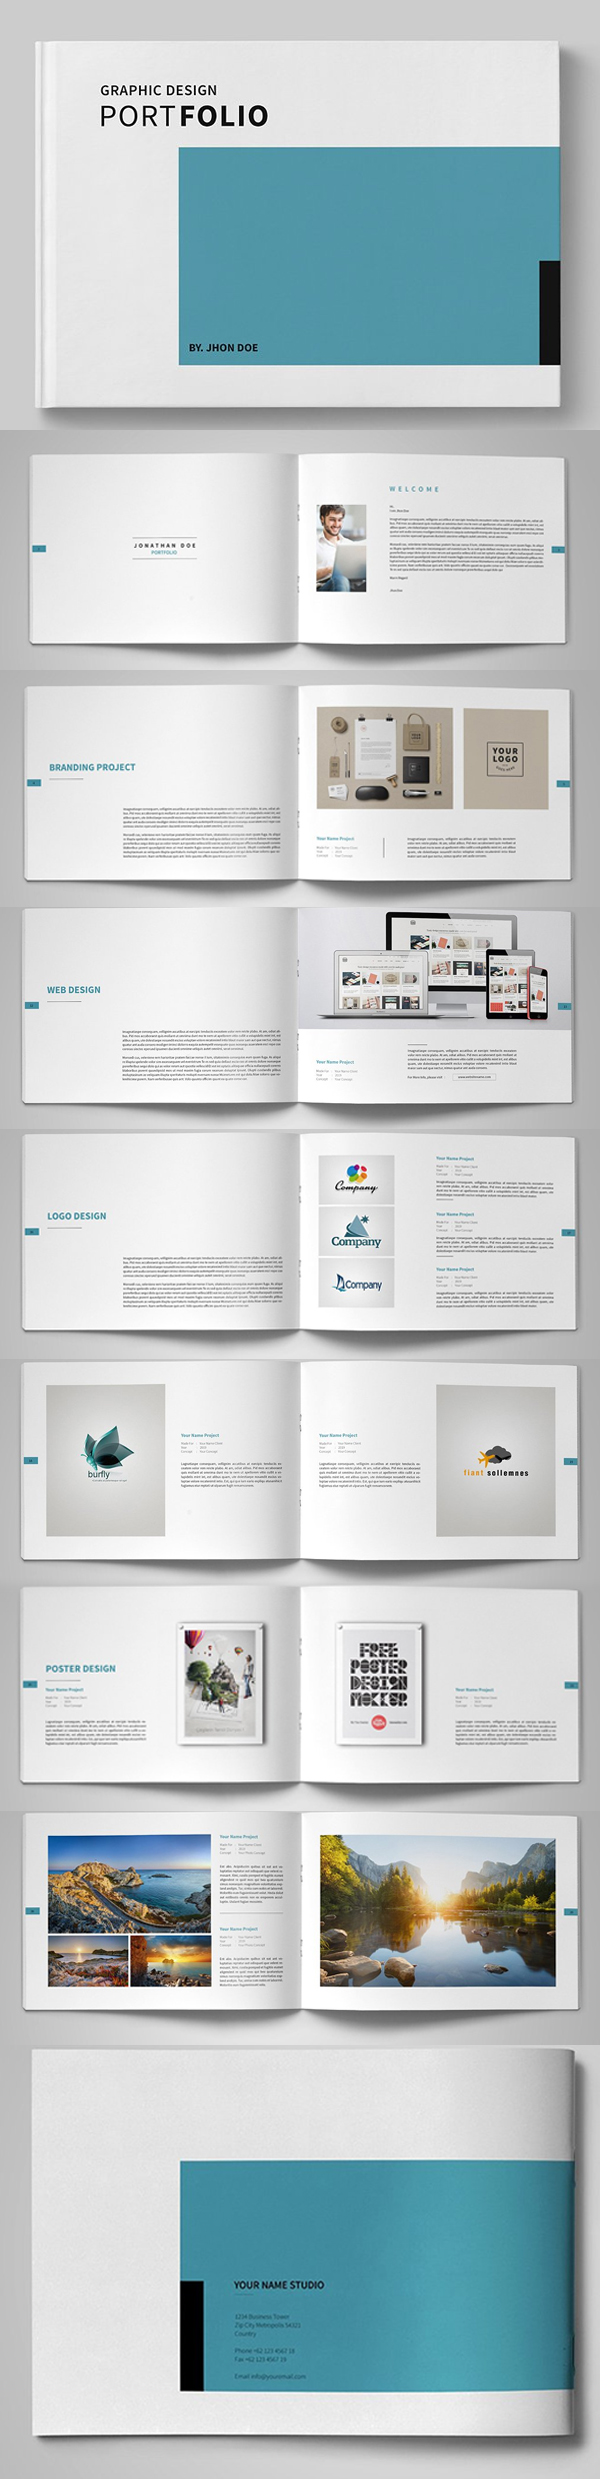 20 new professional catalog brochure templates design for Graphic design brochure templates